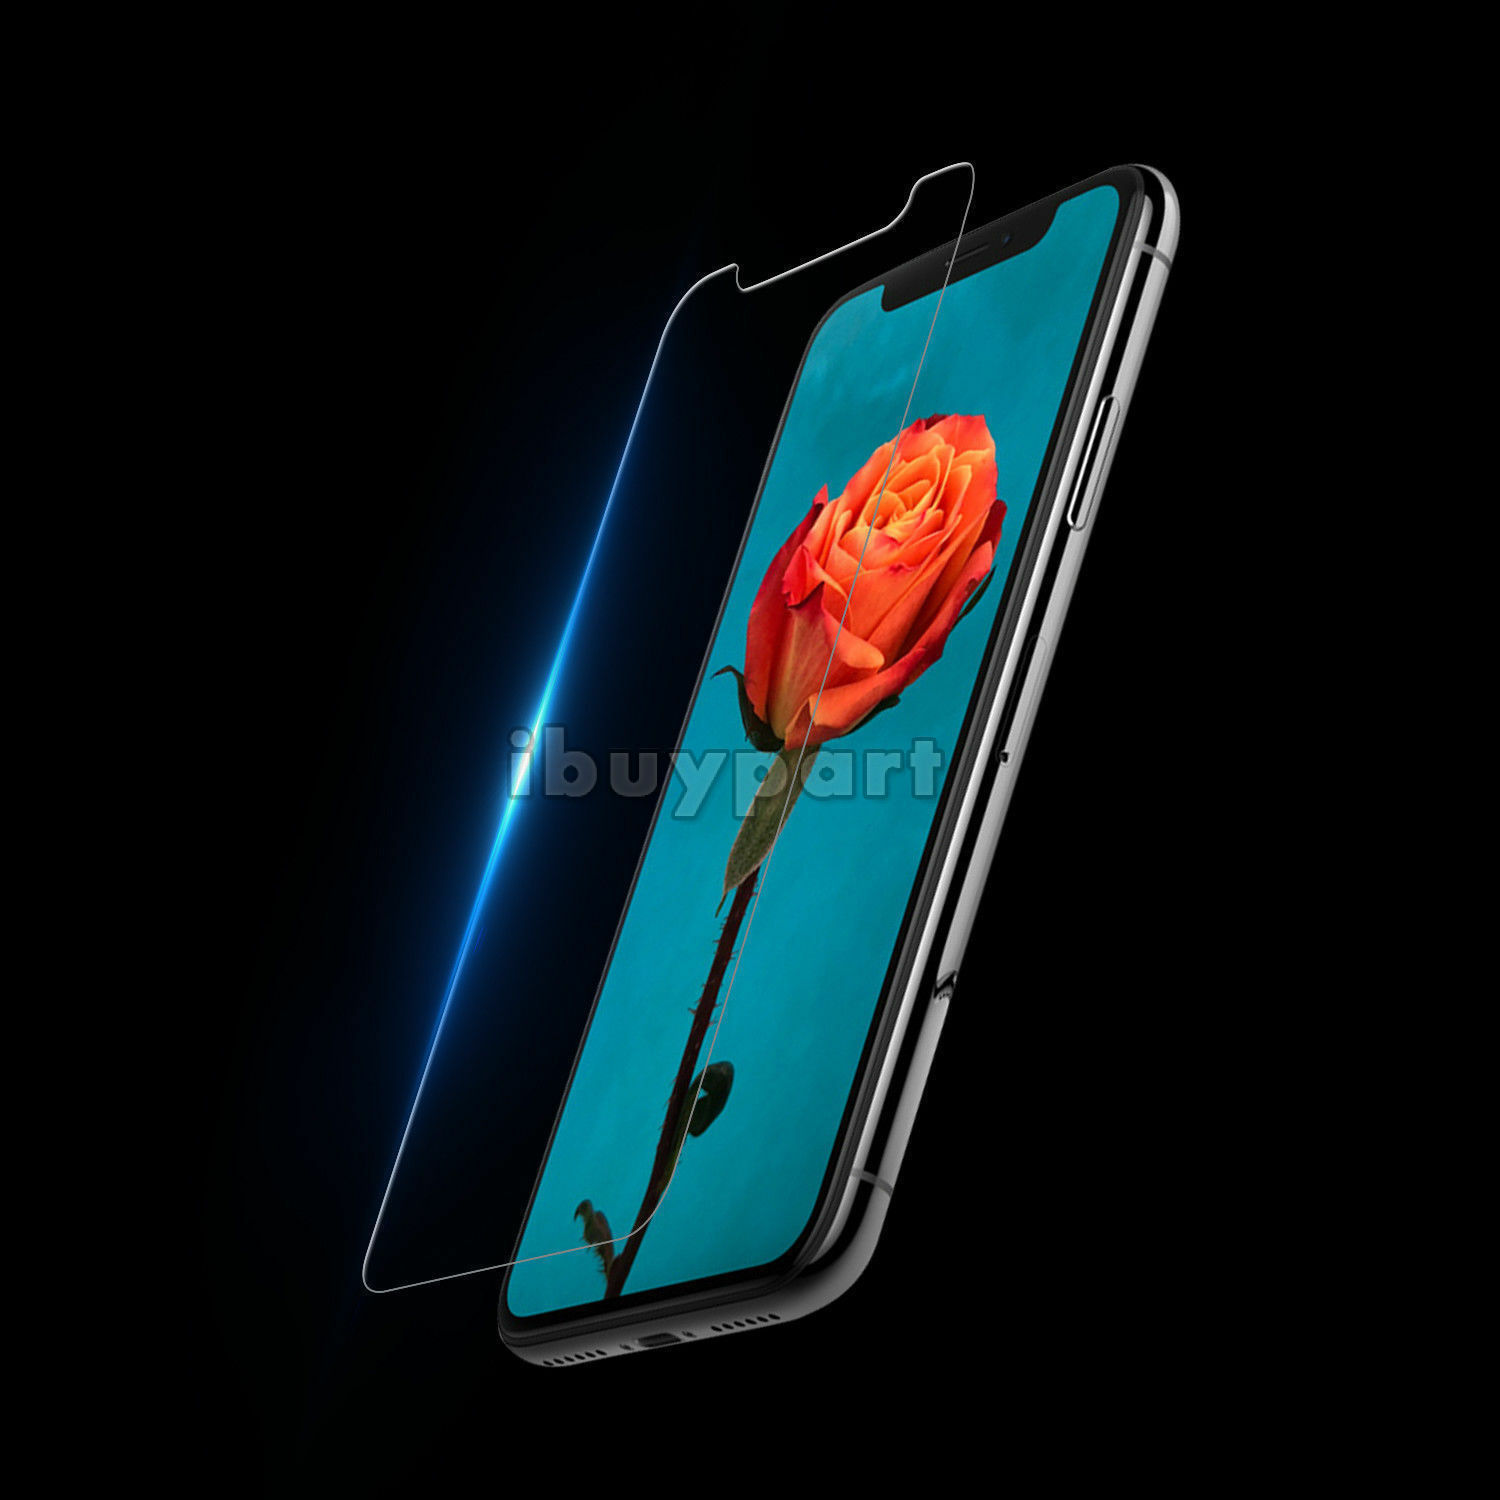 3-Pack-For-iPhone-11-Pro-11-Pro-Max-X-Xs-Max-XR-Tempered-Glass-Screen-Protector thumbnail 21